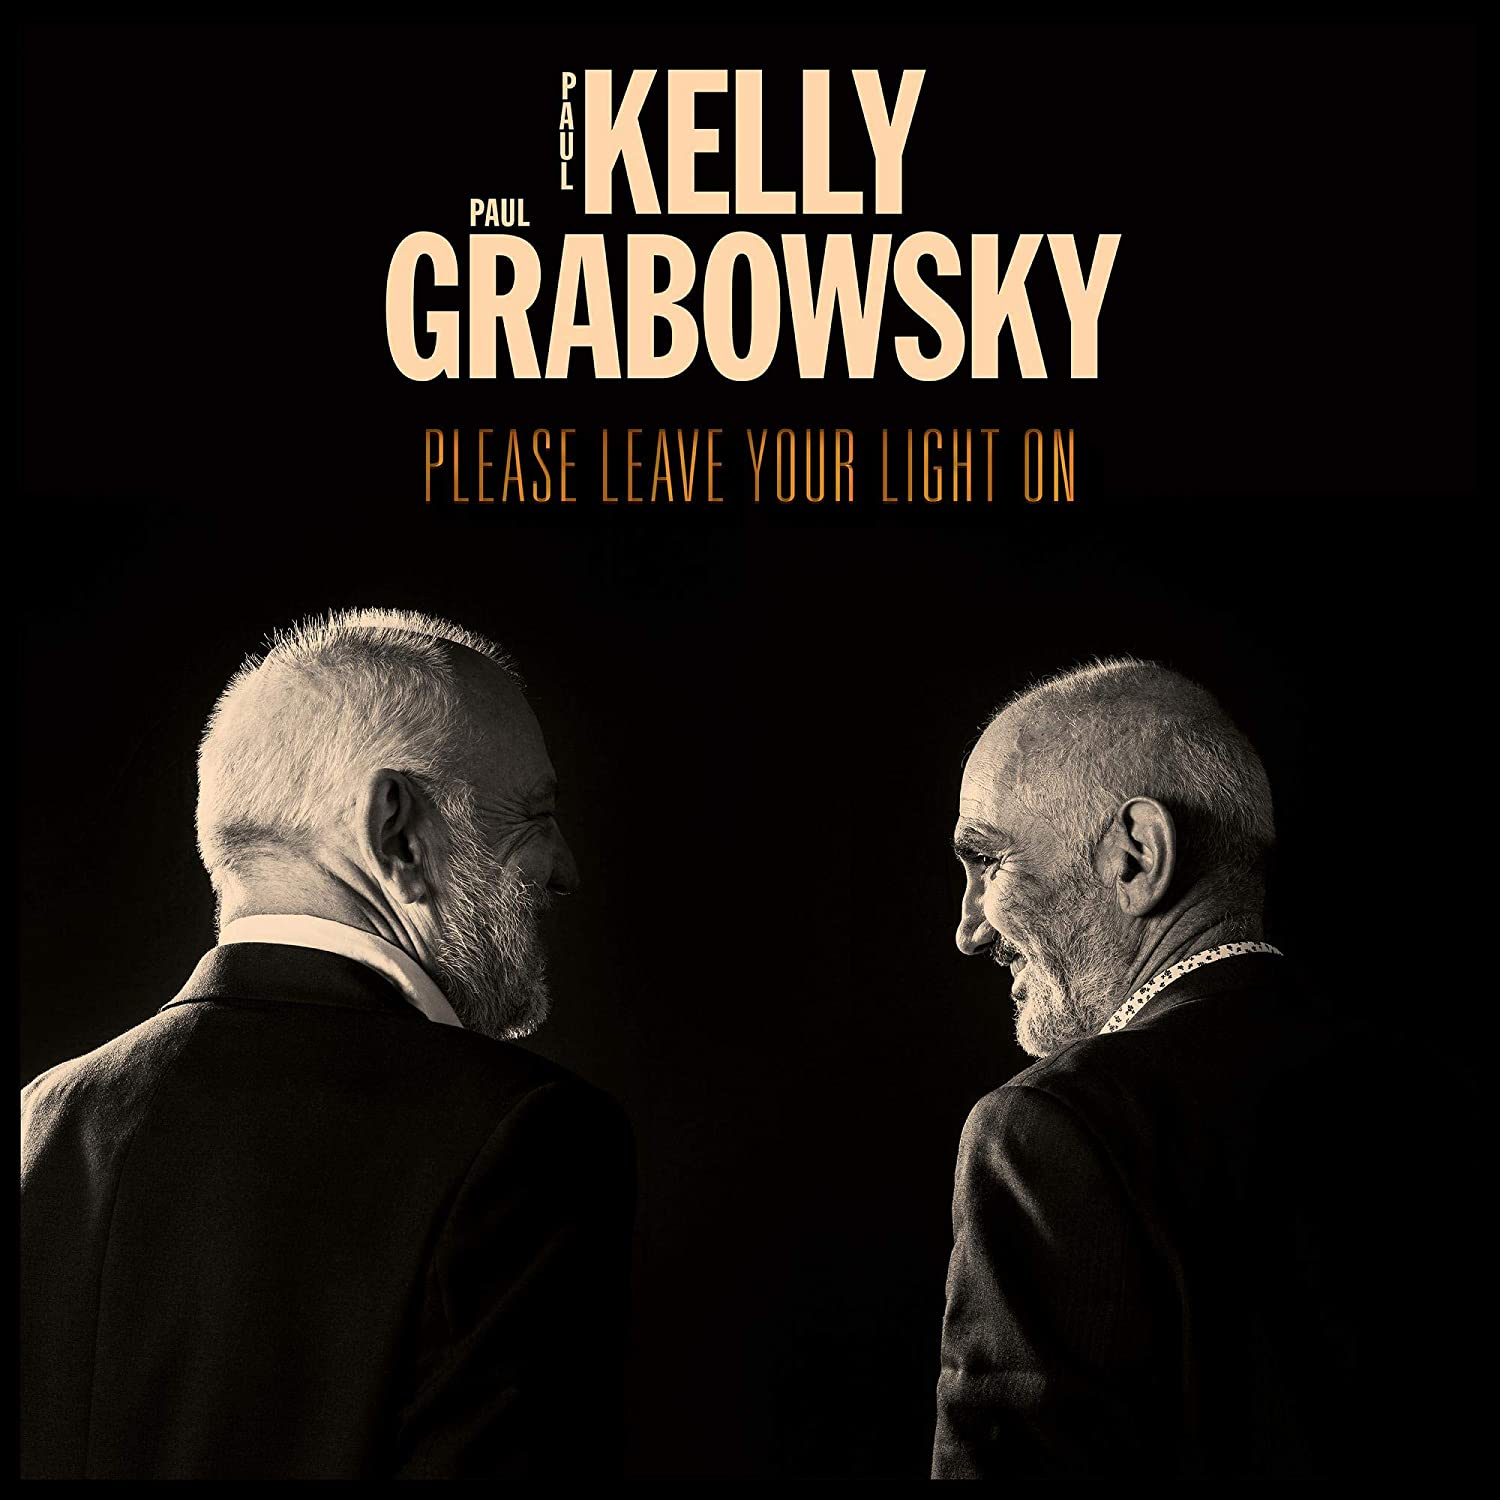 Paul Kelly / Paul Grabowsky - Please Leave Your Light On [LP]